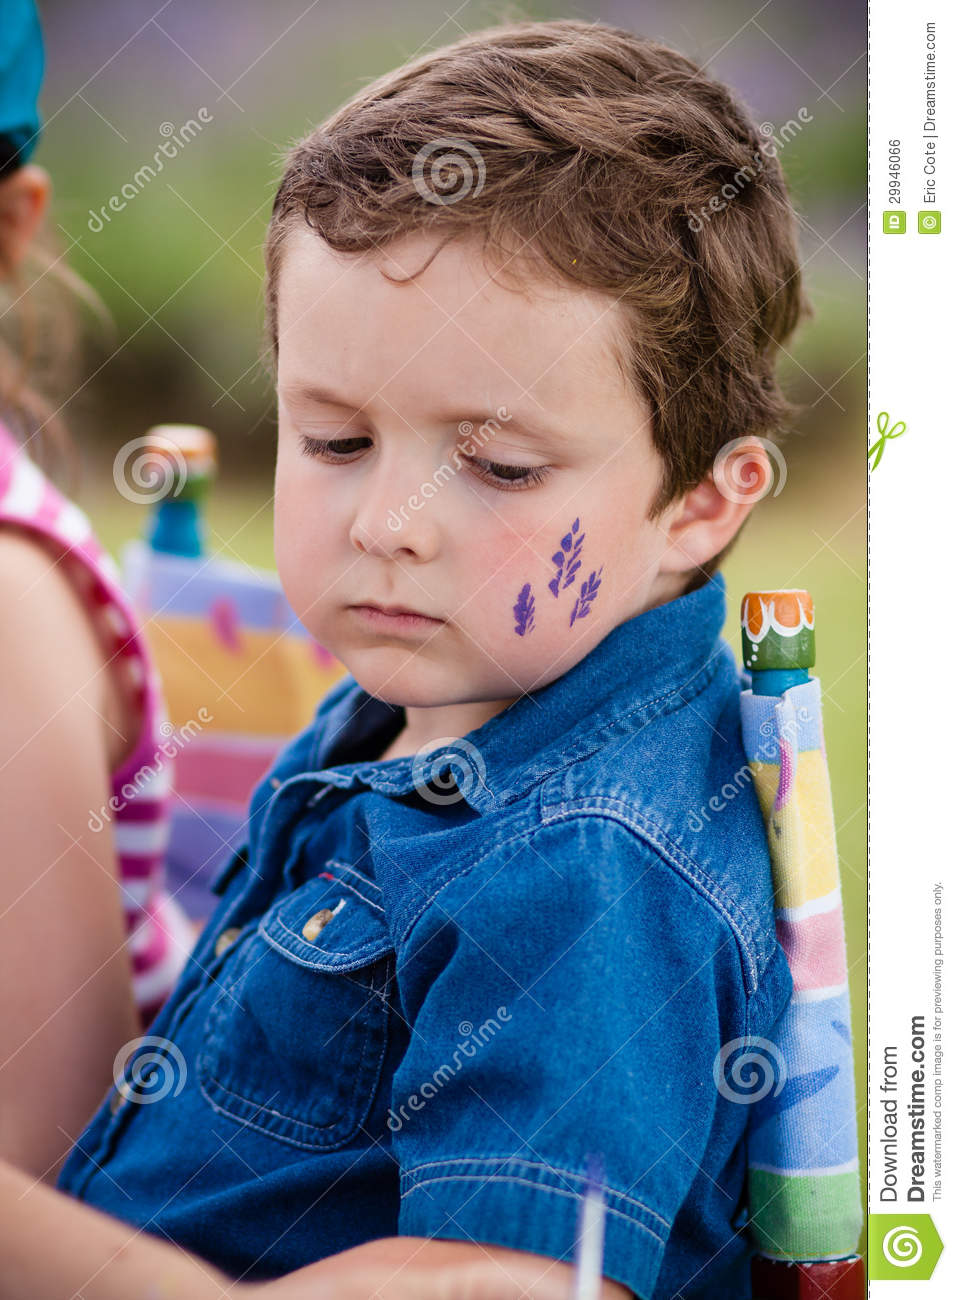 Drawing On The Face Royalty Free Stock Image Image 29946066